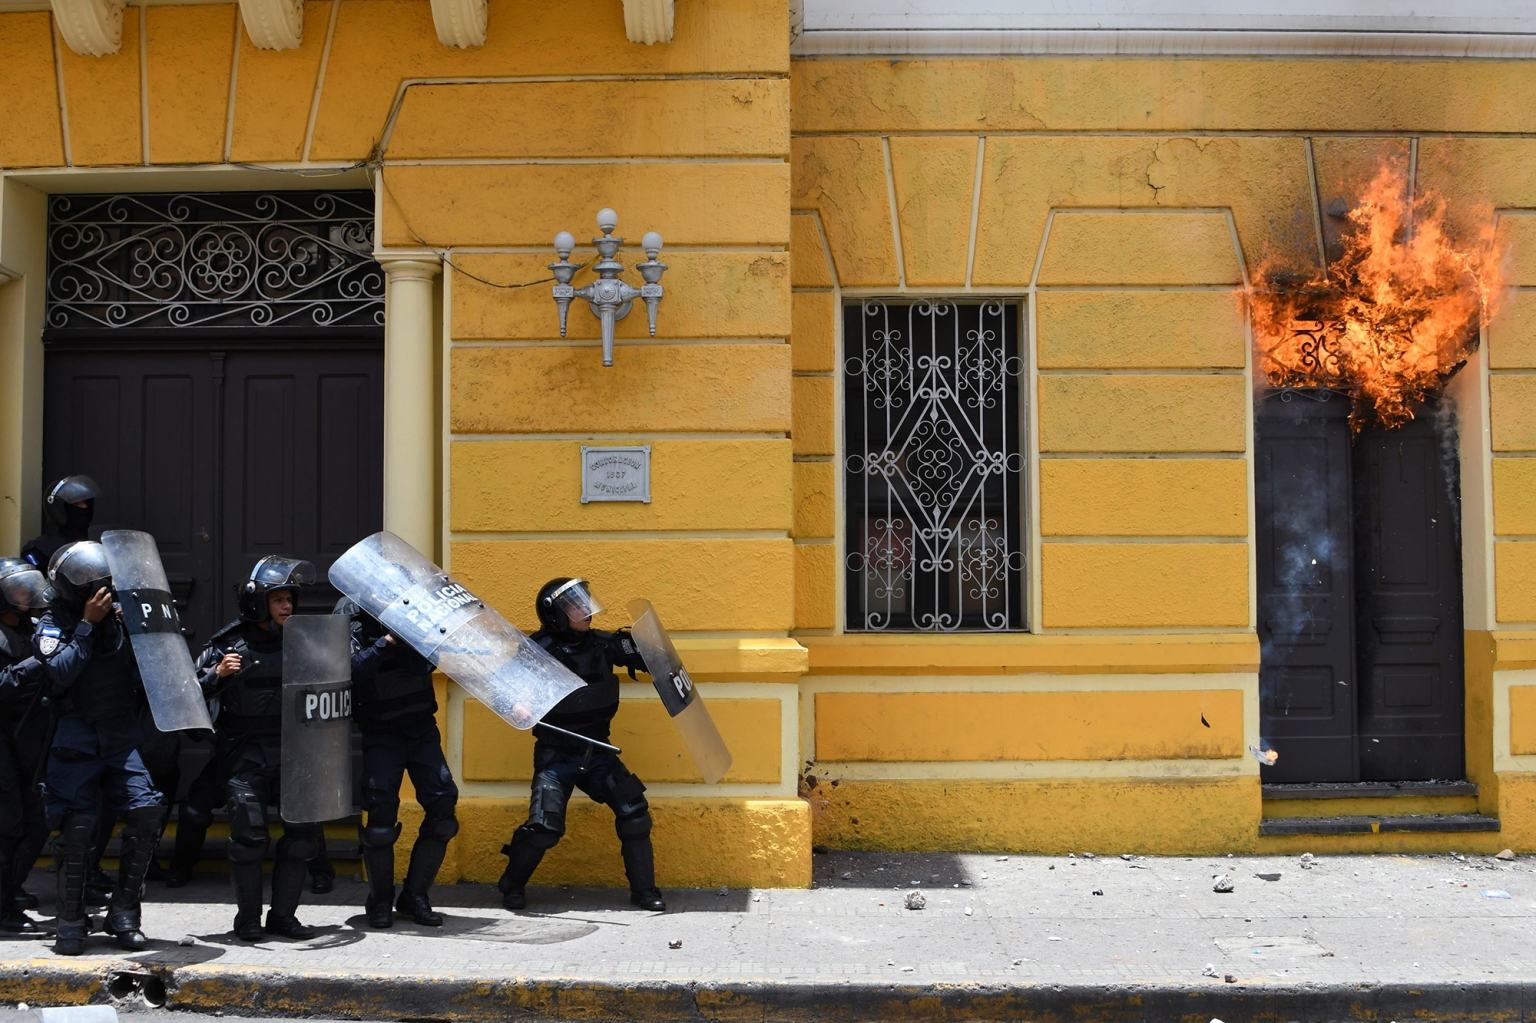 Honduran riot policemen stand outside the Municipal Government of the Central District of Tegucigalpa after demonstrators set it on fire during a May Day protest demanding the resignation of President Juan Orlando Hernandez on May 1. Thousands of workers there and worldwide took to the streets to demand better working conditions and welfare during International Labor Day. ORLANDO SIERRA/AFP/Getty Images